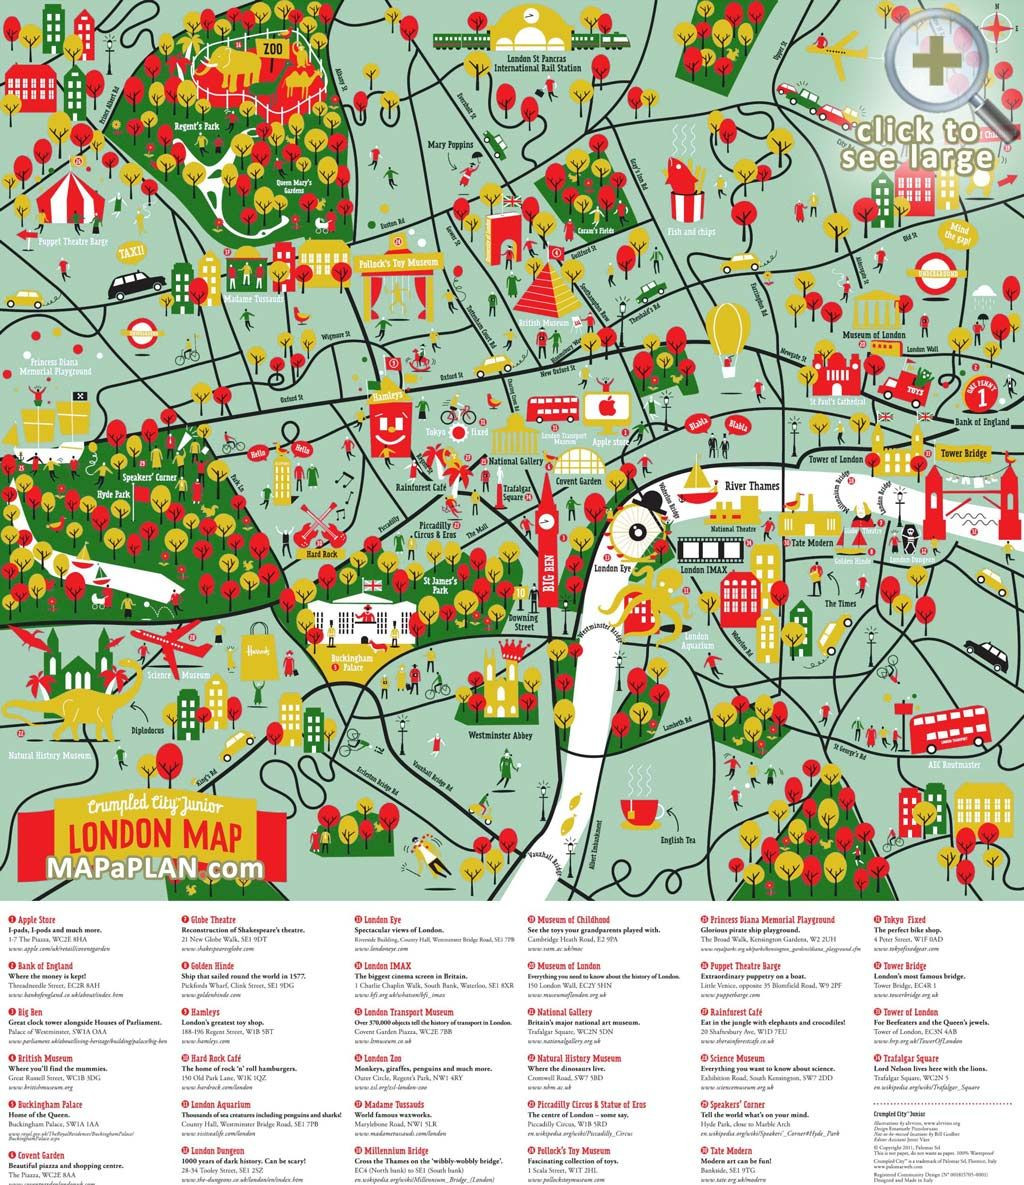 London maps Top tourist attractions Free printable city maps Mapaplan